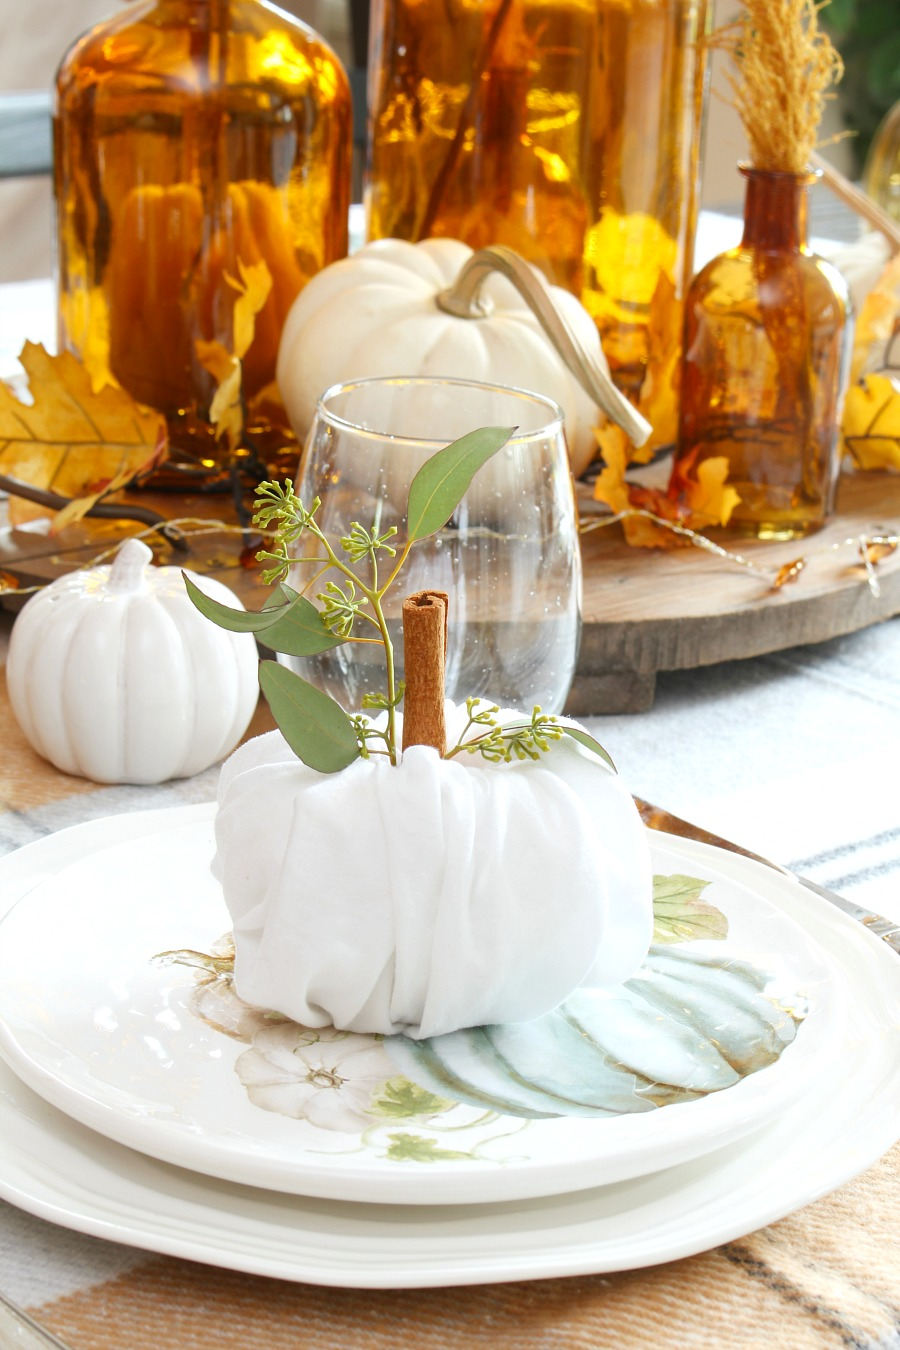 Thanksgiving place settings with cute napkin fold pumpkins.